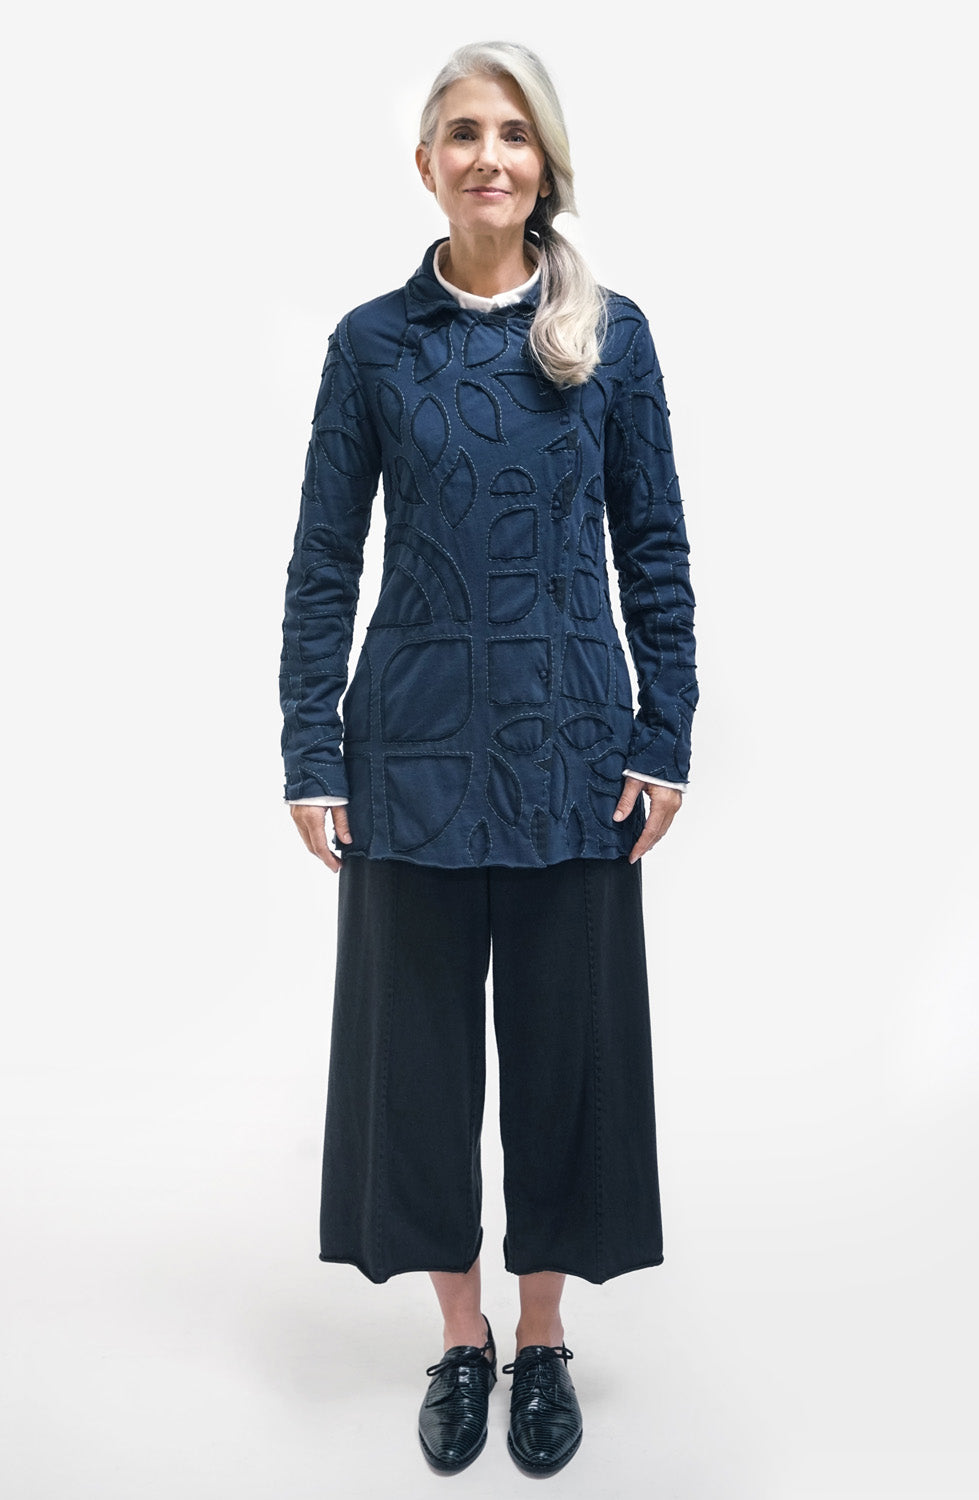 The School of Making The Asymmetrical Peacoat Kit DIY Hand-Sewn and Hand Painted Coat with Collar